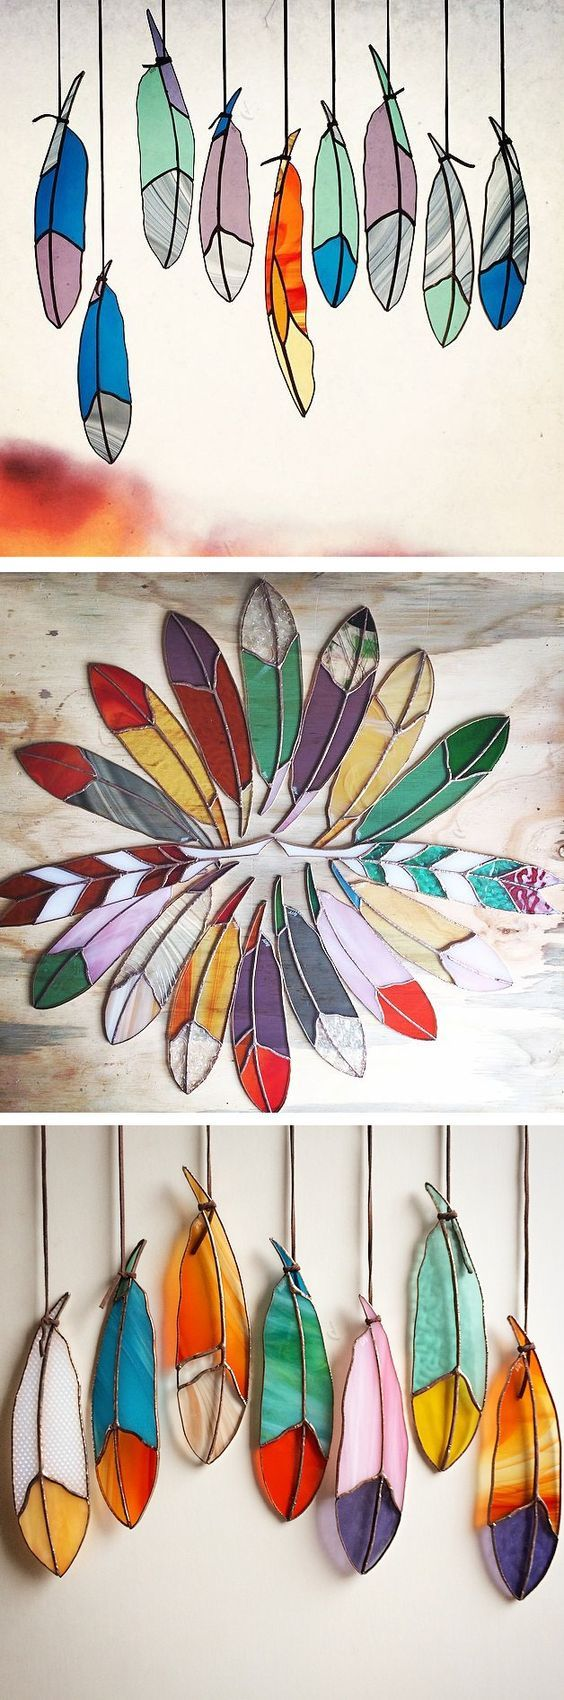 Dangle these handsome stained glass feathers in a bright window, and you'll be rewarded with graceful colors cast across the room. Each glass feather is carefully made by hand, so no two are exactly alike.